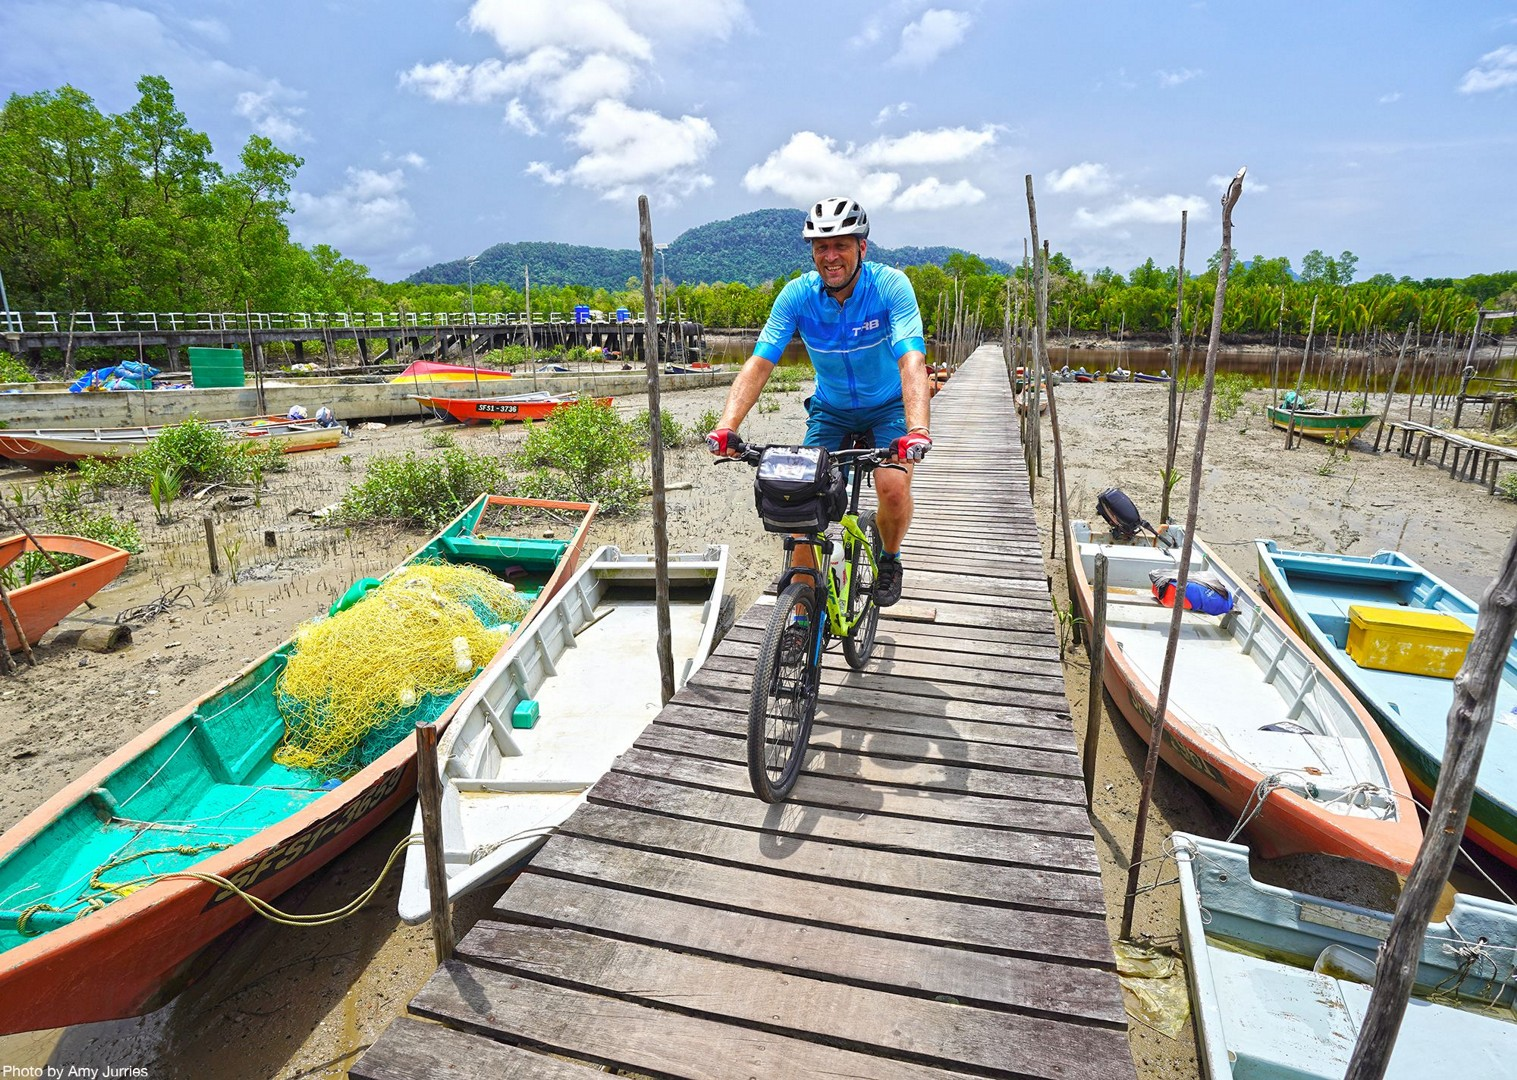 andrewboats.jpg - Borneo - Secret Sarawak - Cycling Adventures